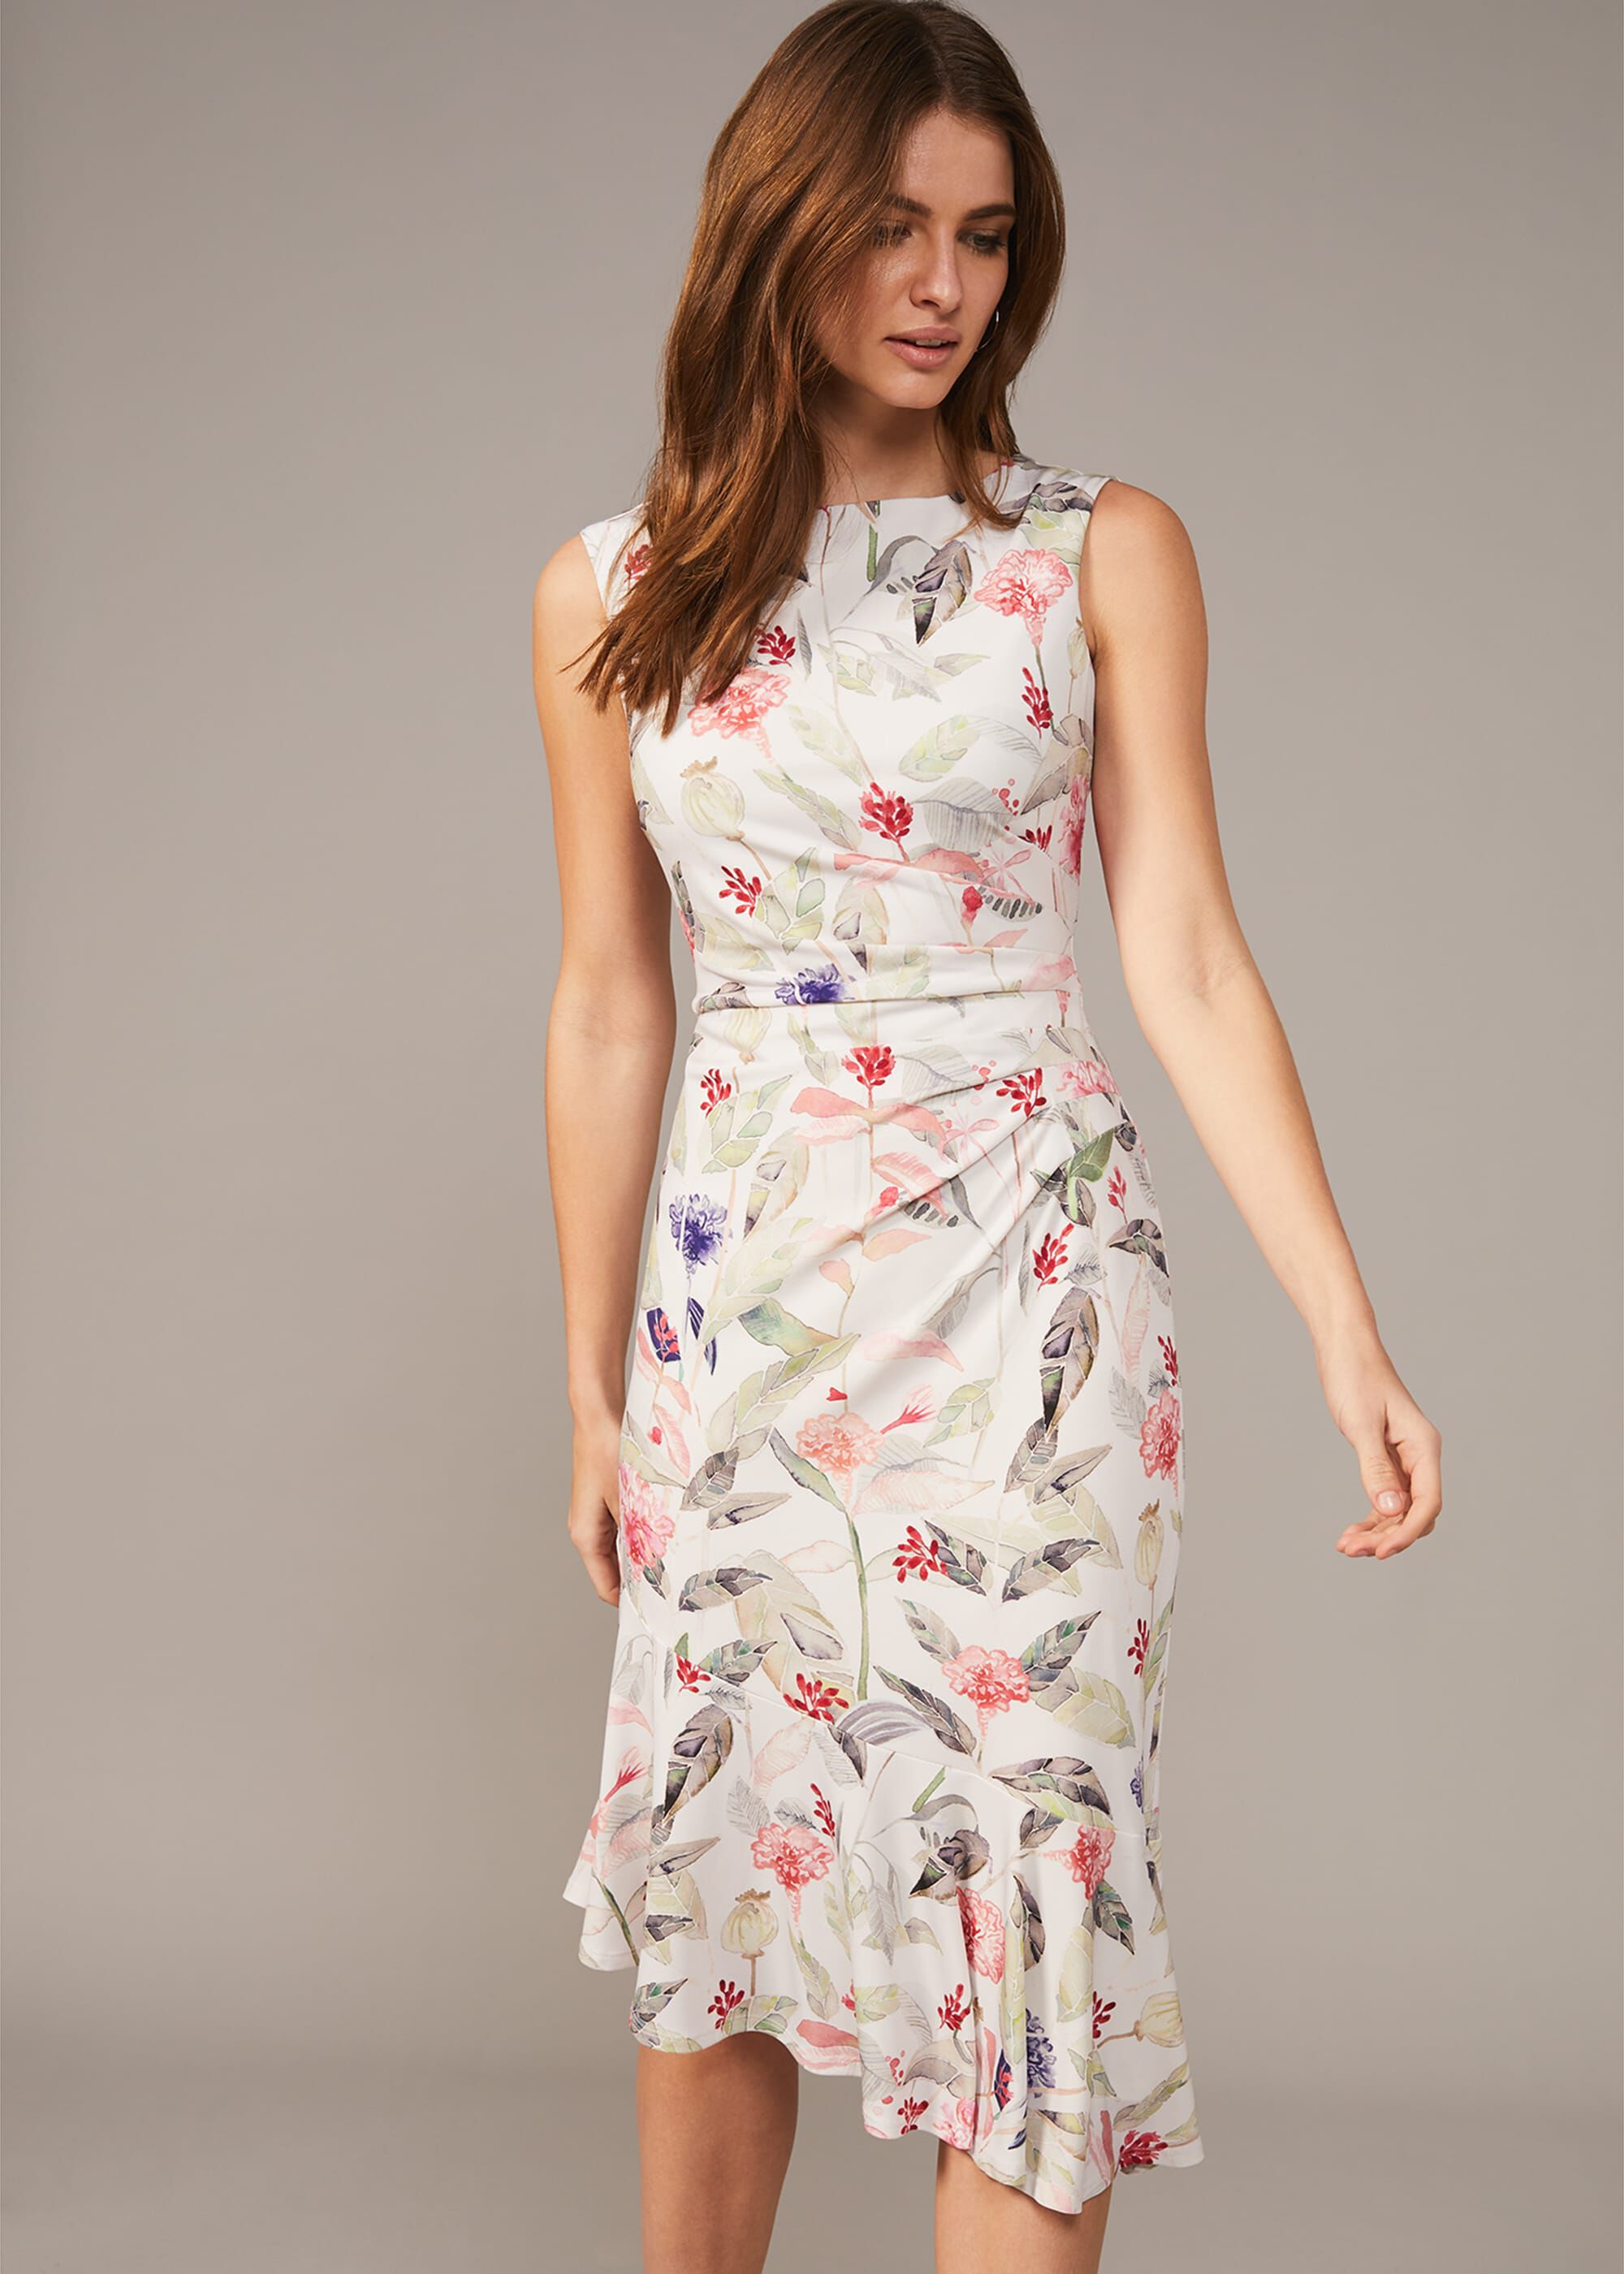 Phase Eight Dulcie Floral Jersey Dress, Multicoloured, Fitted, Occasion Dress